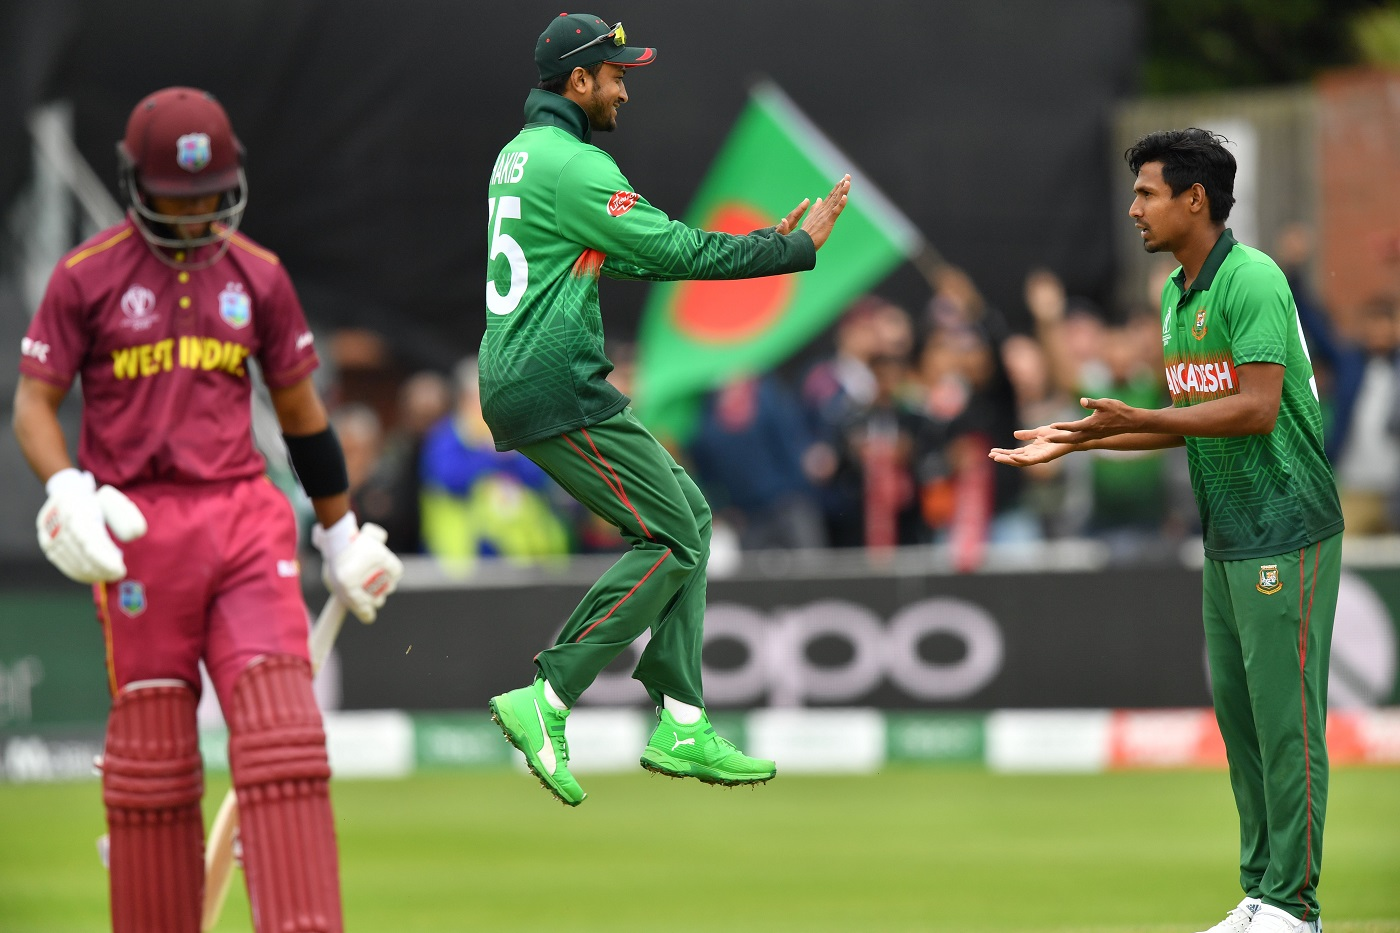 Bangladesh defeat West Indies by 7 wickets in 23rd match of 2019 World Cup